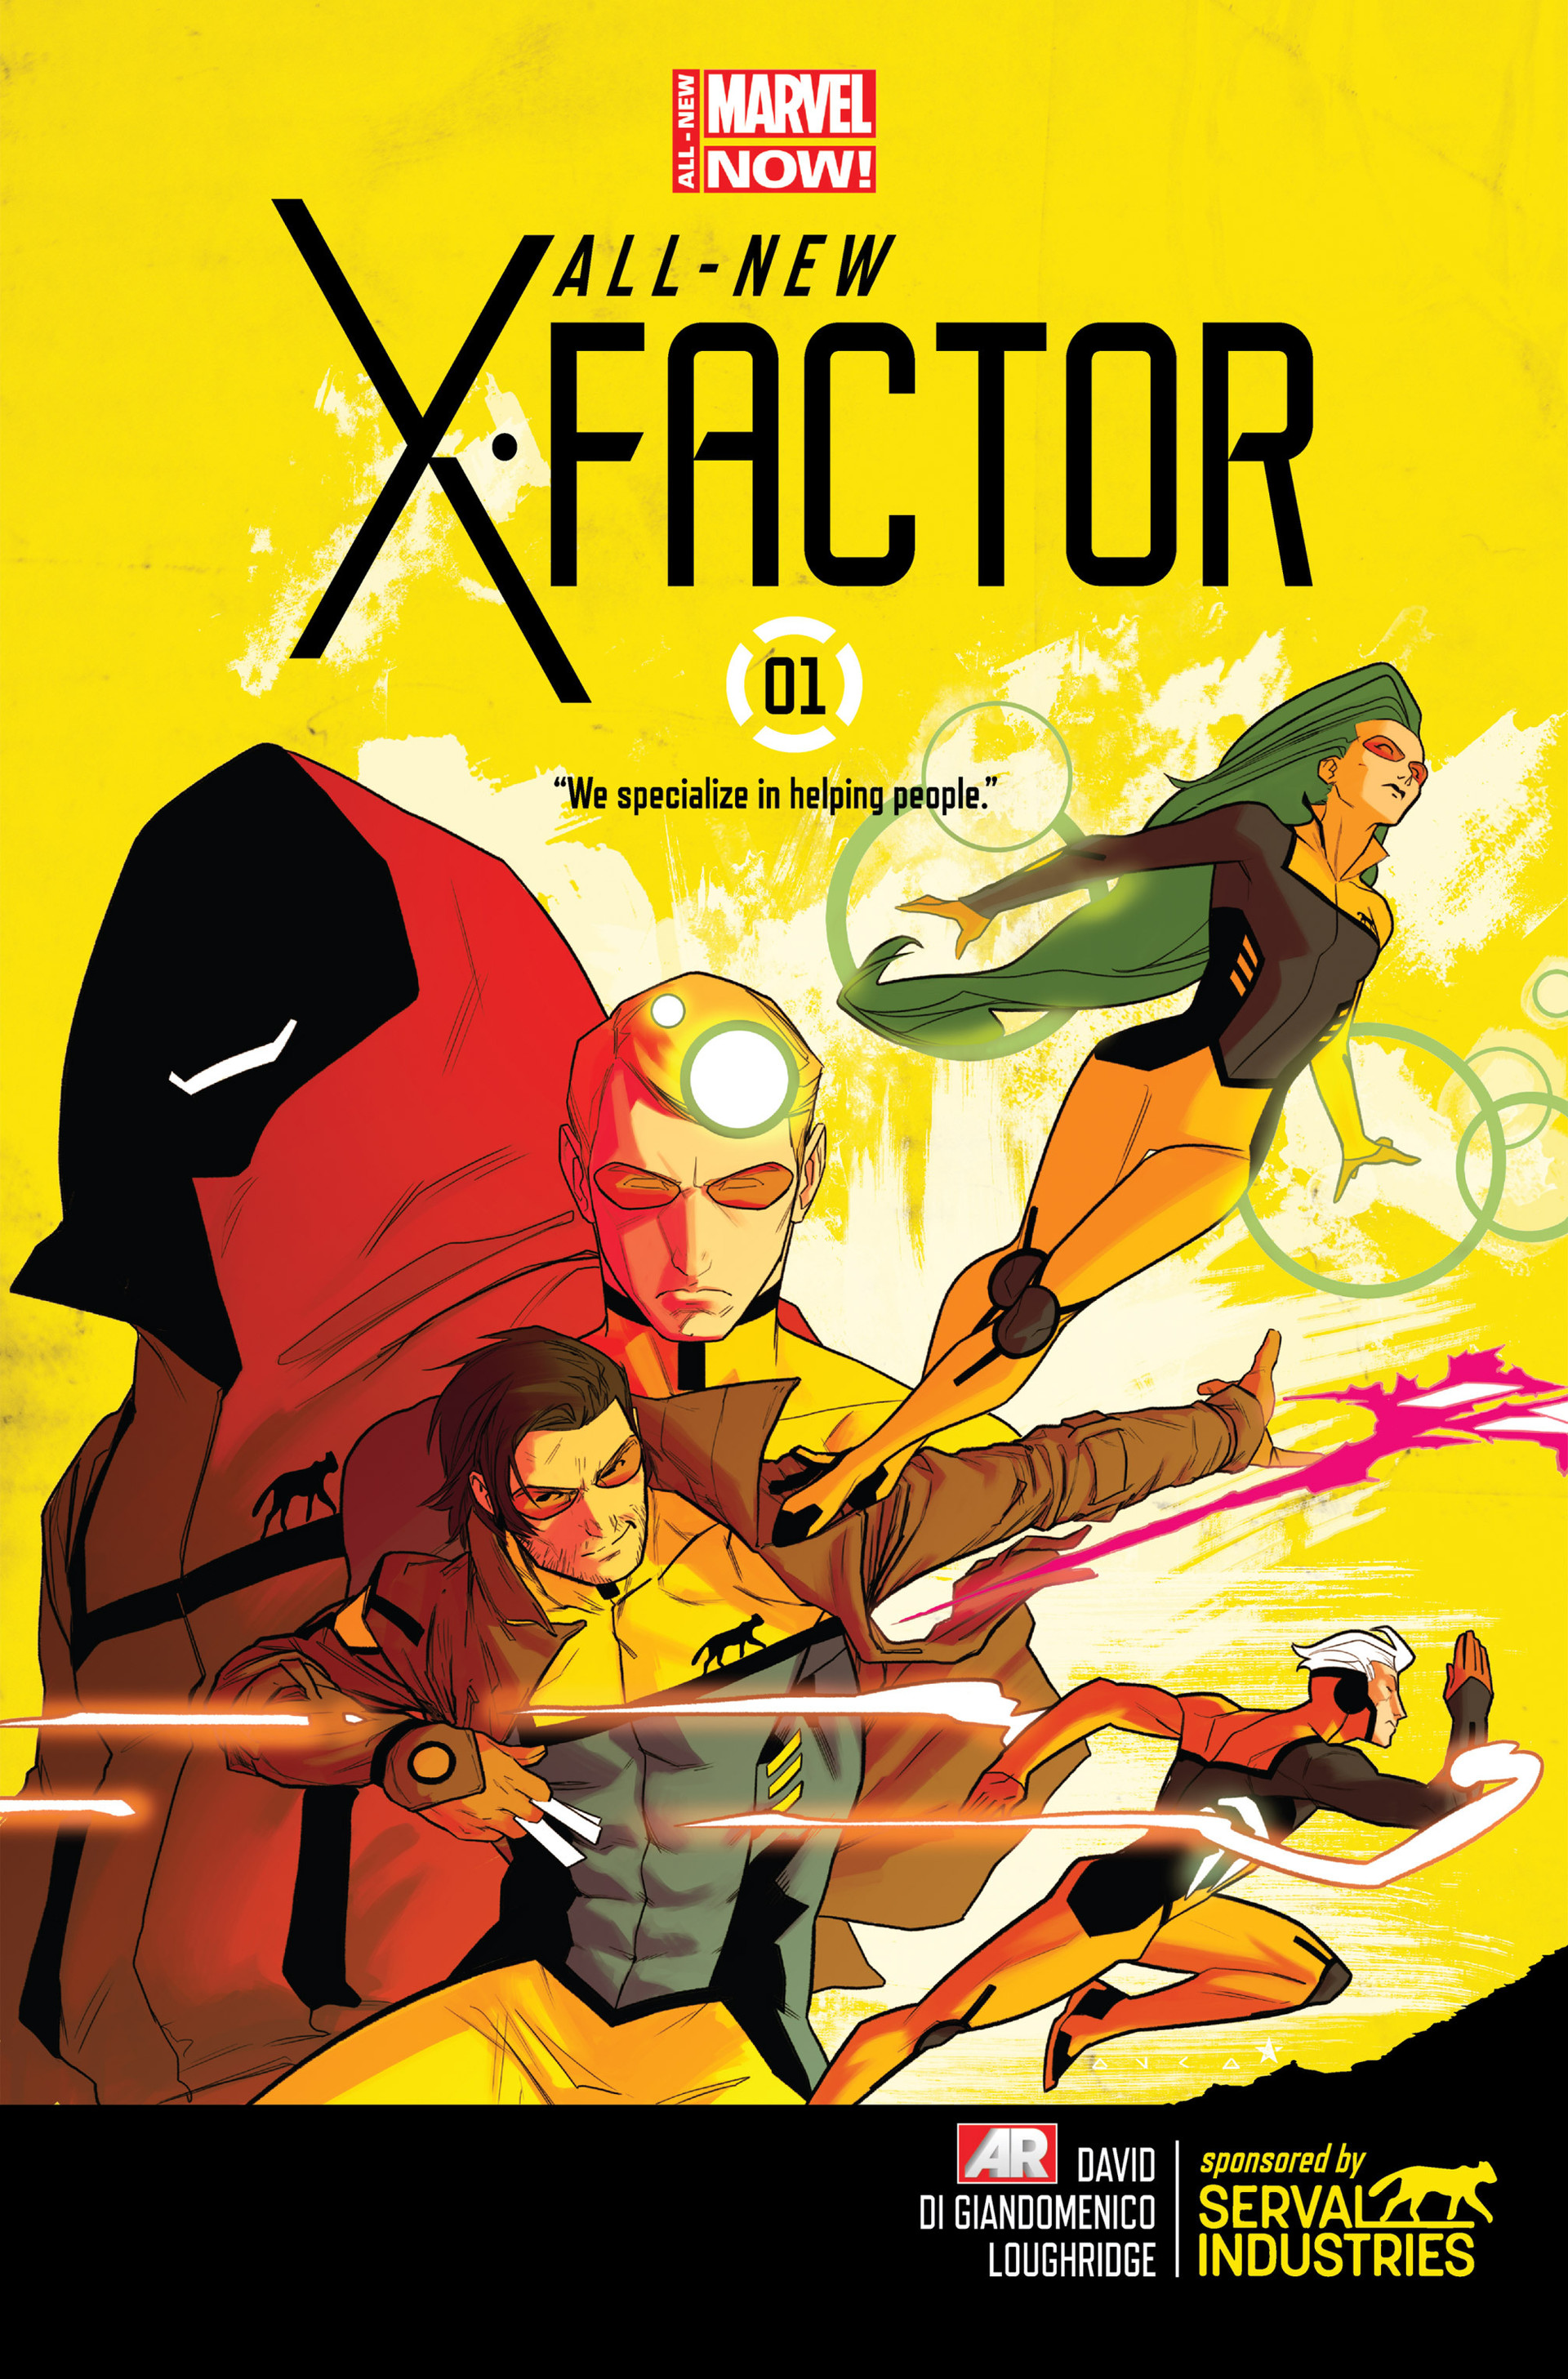 Read online All-New X-Factor comic -  Issue #1 - 1